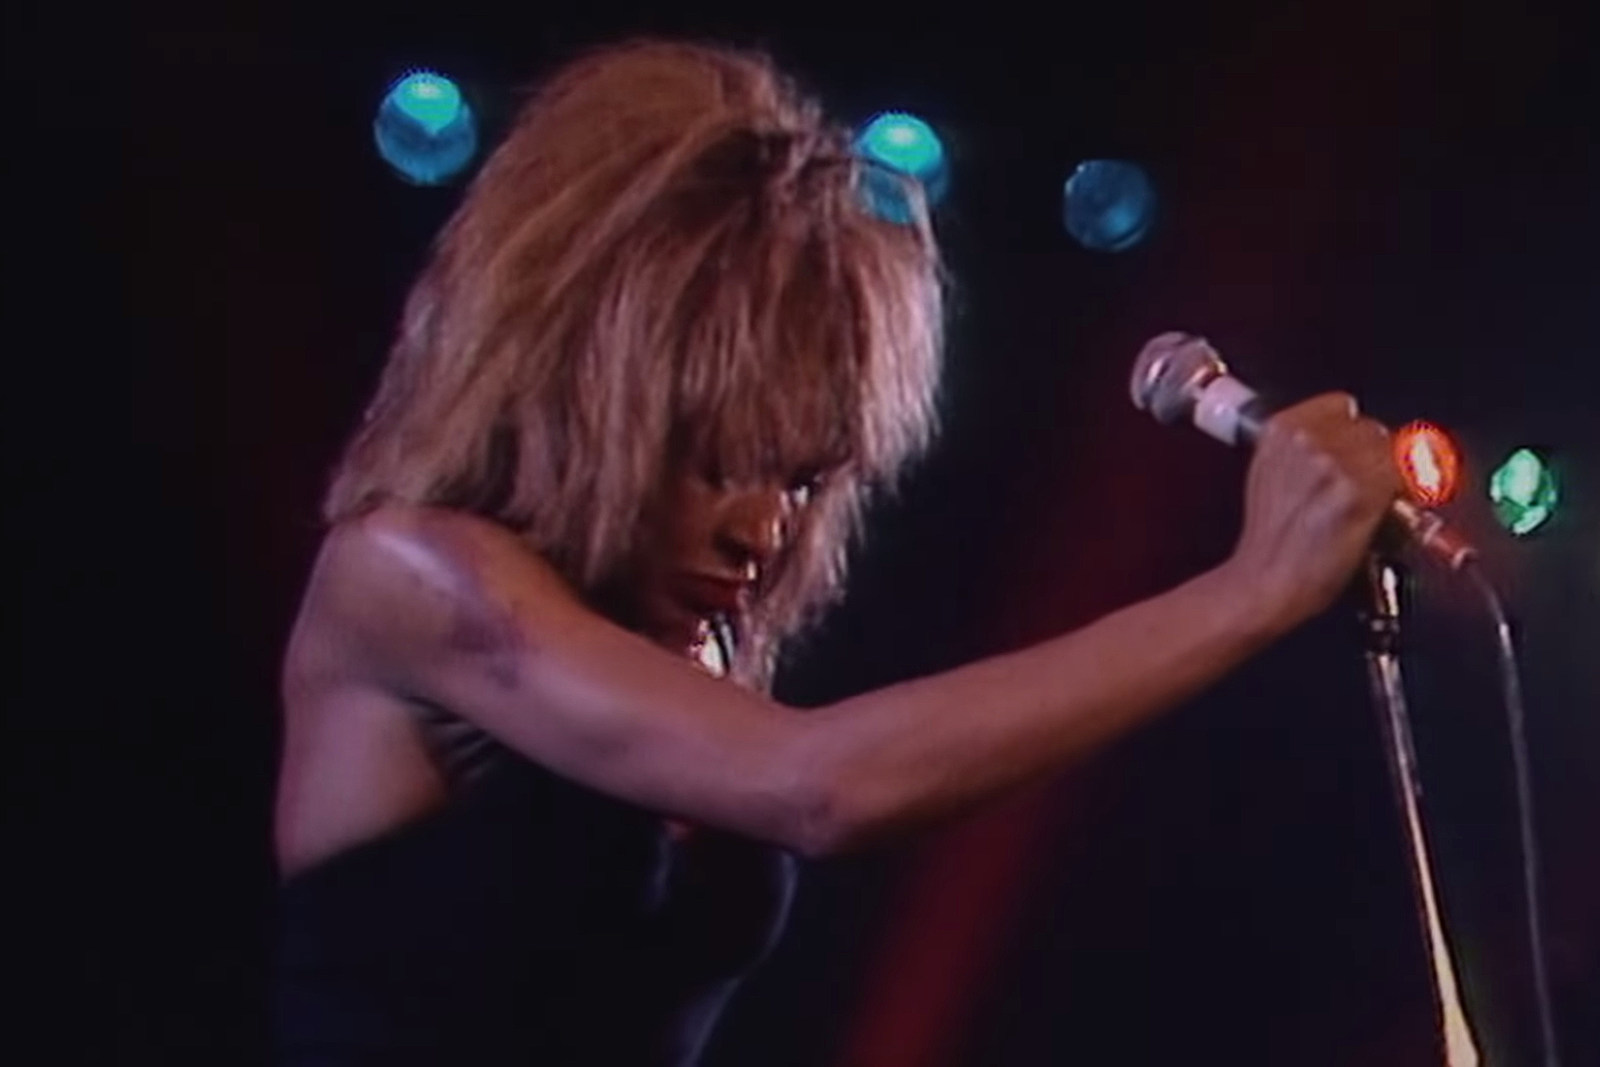 Watch Trailer for New Tina Turner Documentary 'TINA'